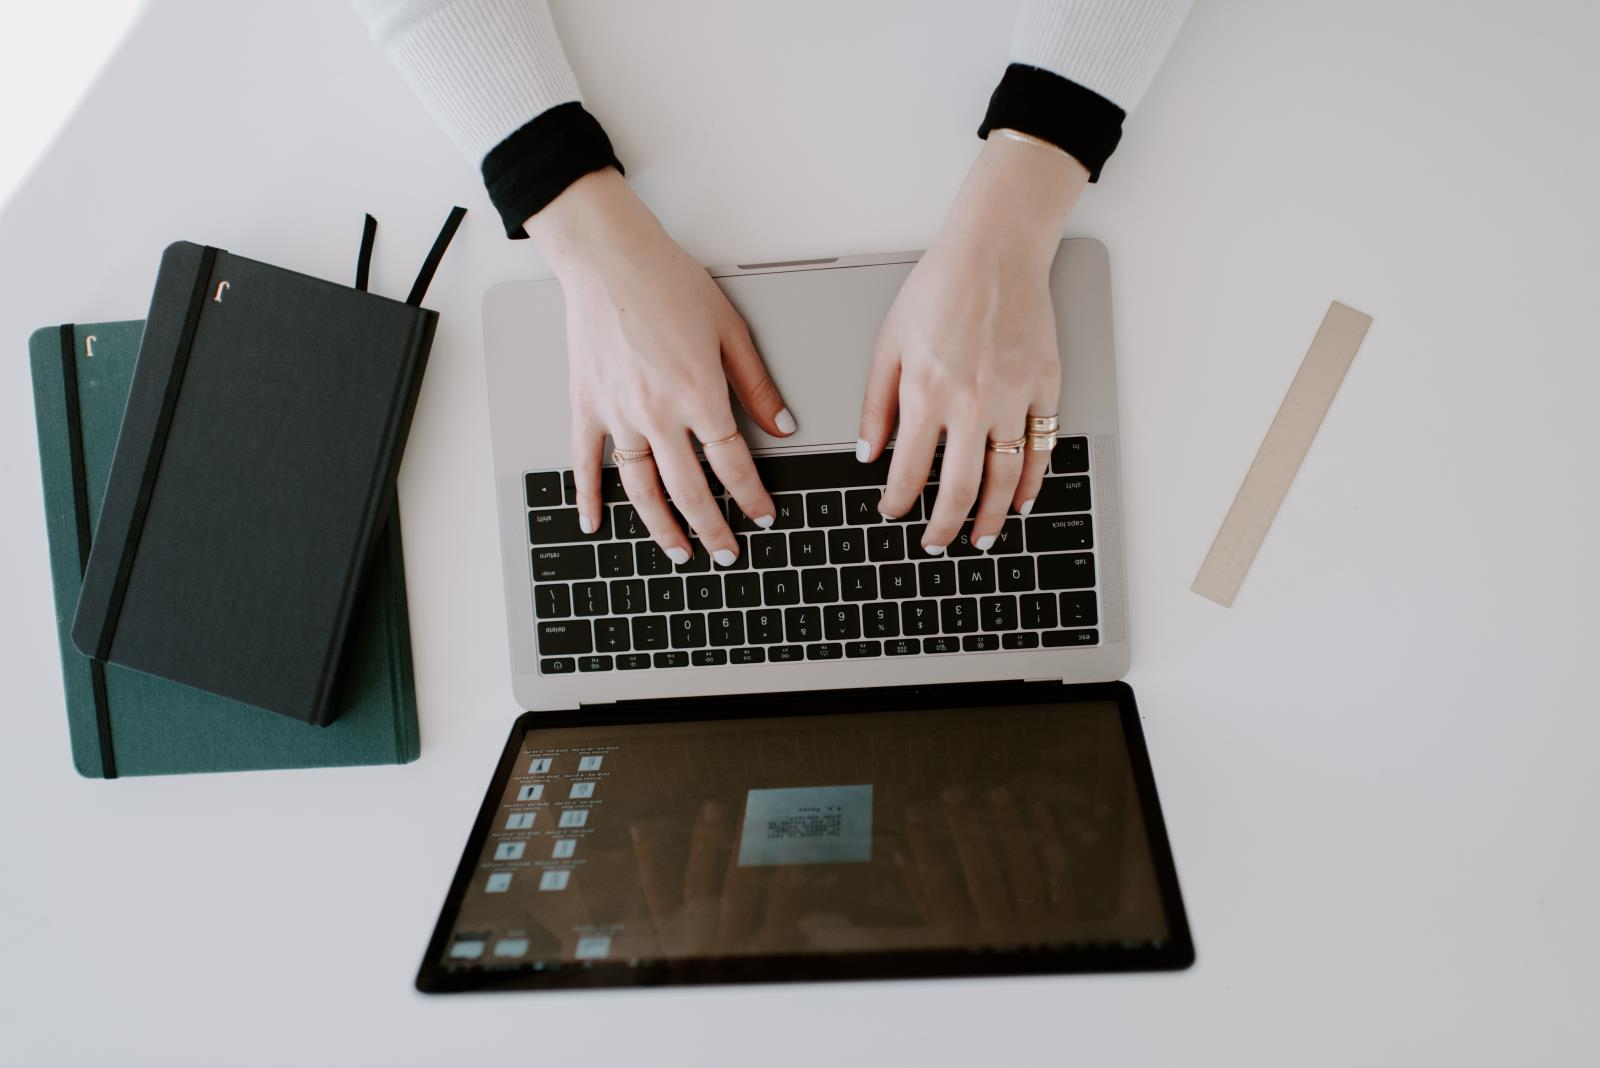 female_business_owner_working_on_a_laptop_in_a_stylish_minimal_space_t20_do2199.jpg